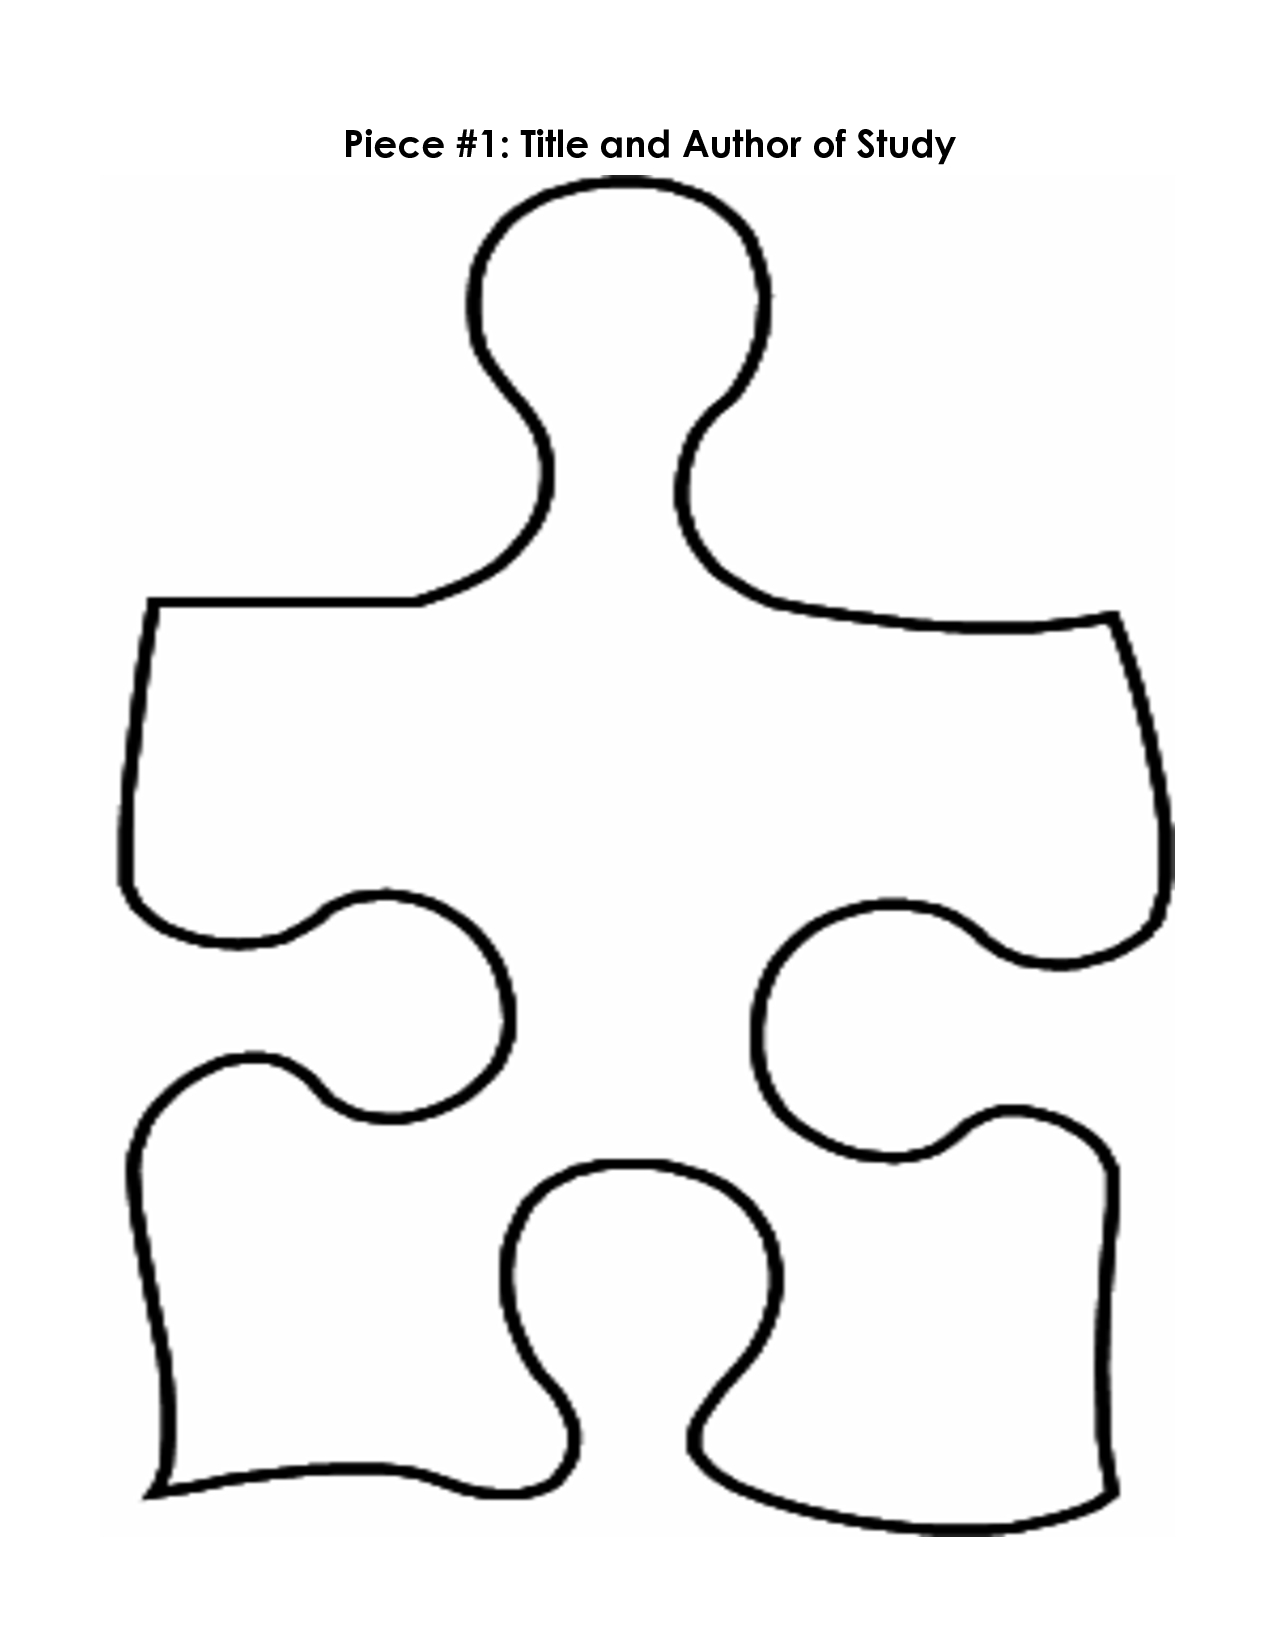 Free Puzzle Pieces Template, Download Free Clip Art, Free Clip Art - Printable Pictures Of Puzzle Pieces